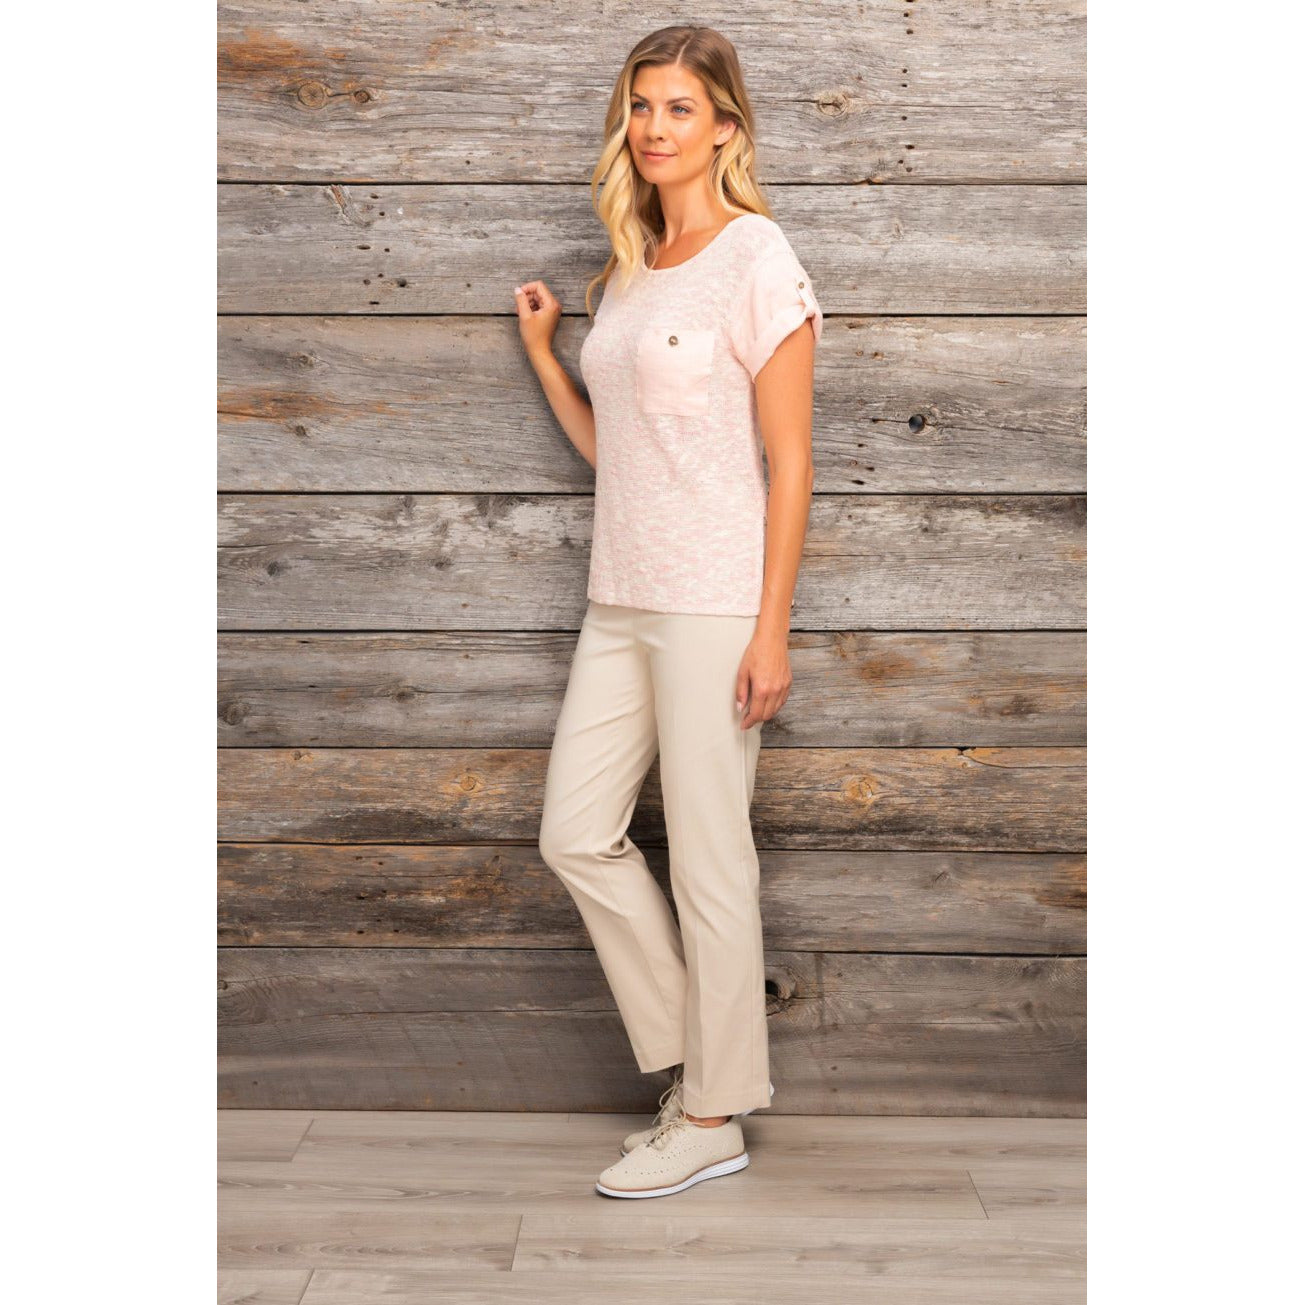 Spanner Tummy Control Sand shell Beige Pants